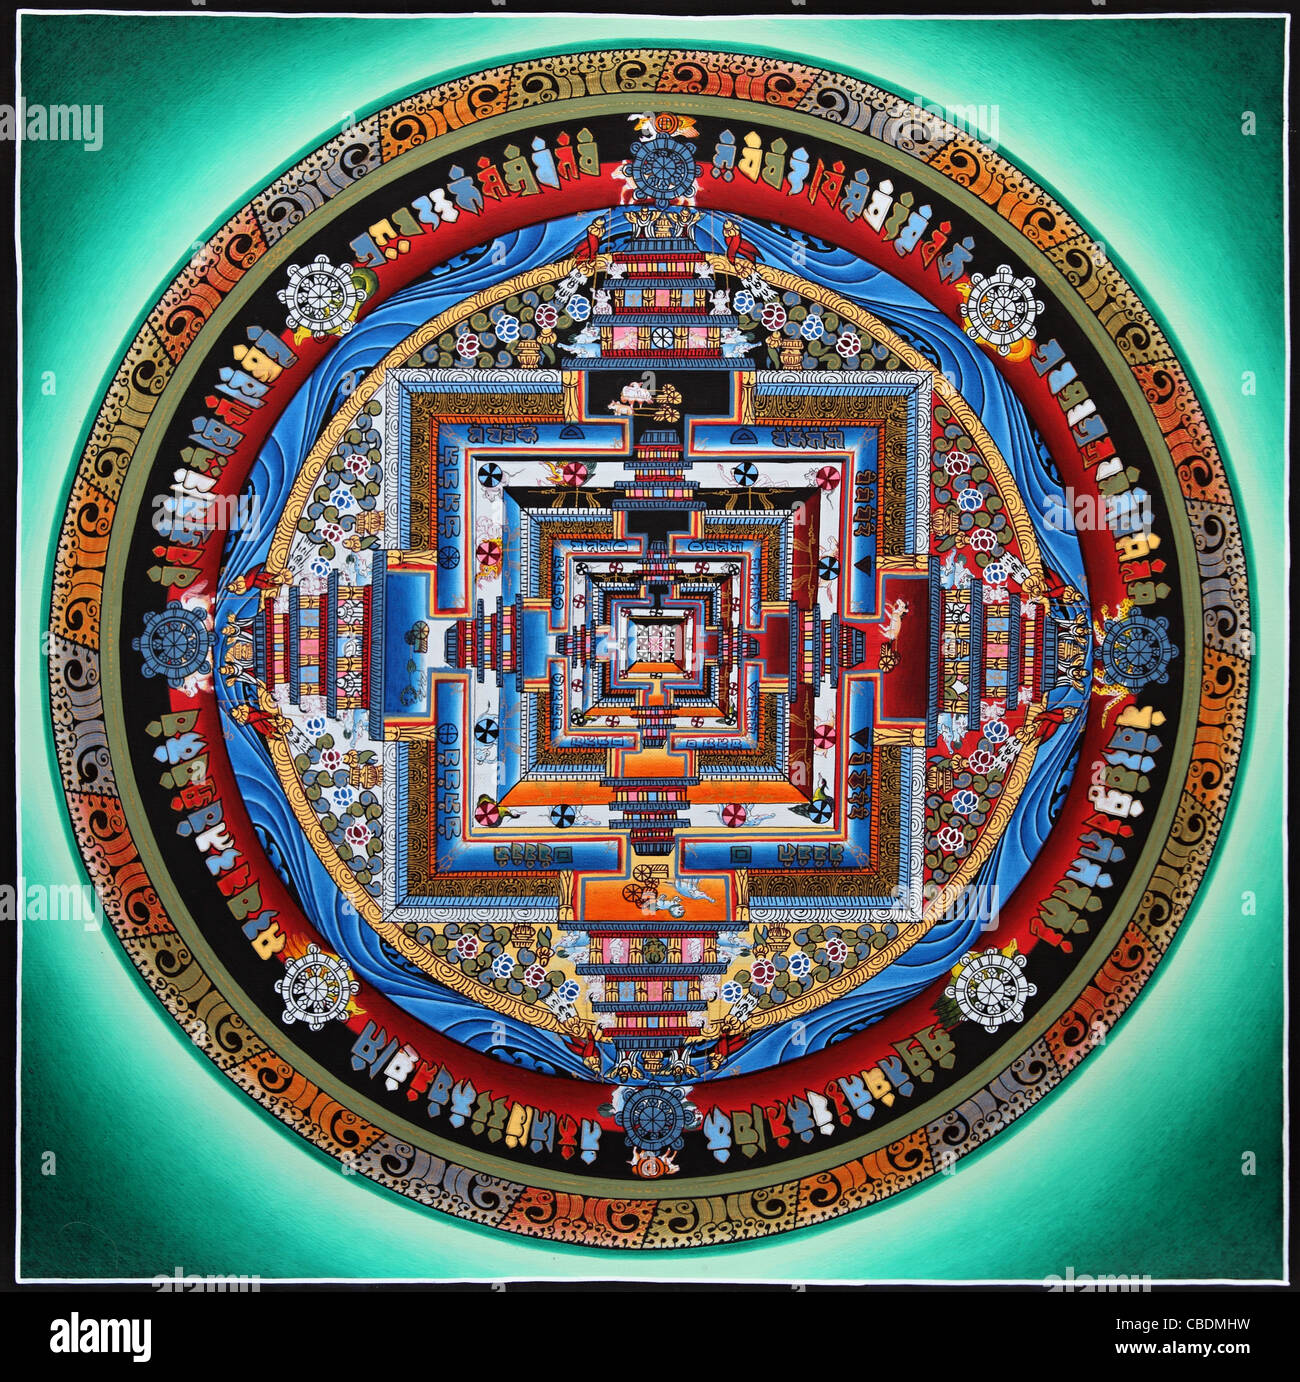 The Indian Mandala - what is this symbol